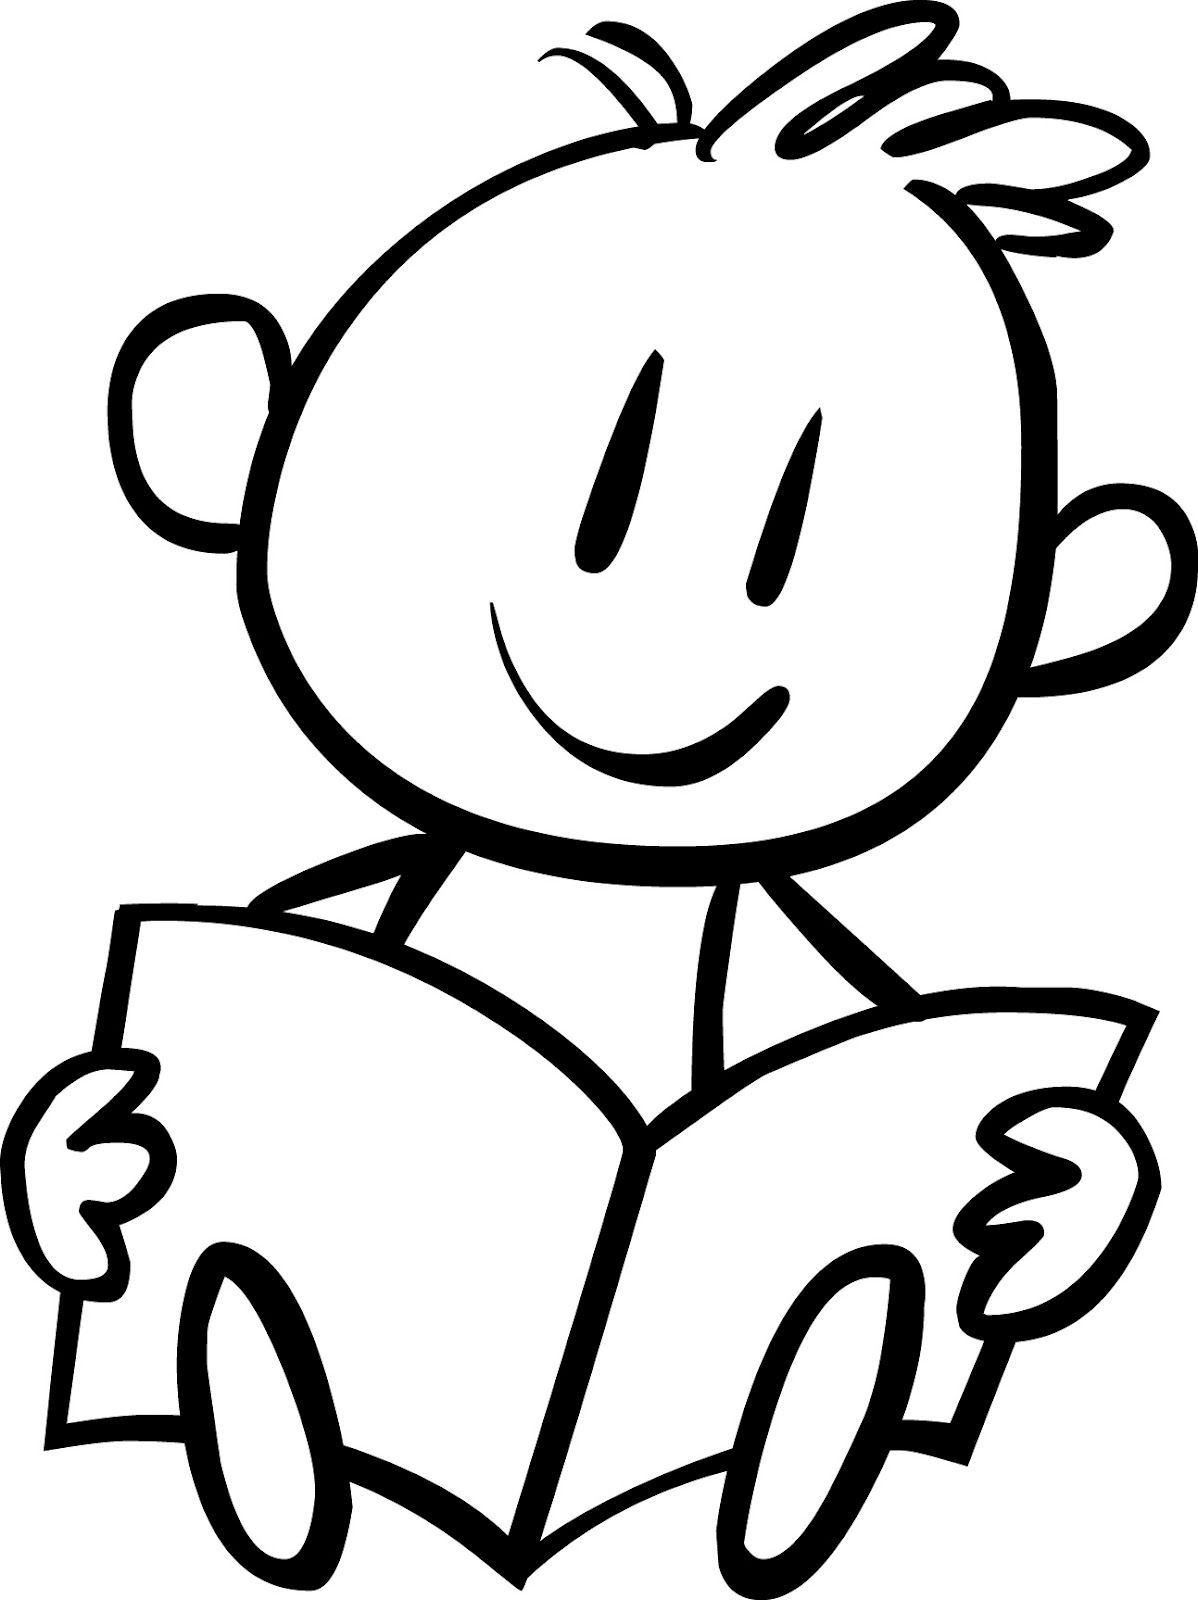 Free coloring pages for reading - Reading Baby Einstein Coloring Pages For Kids Free Printable